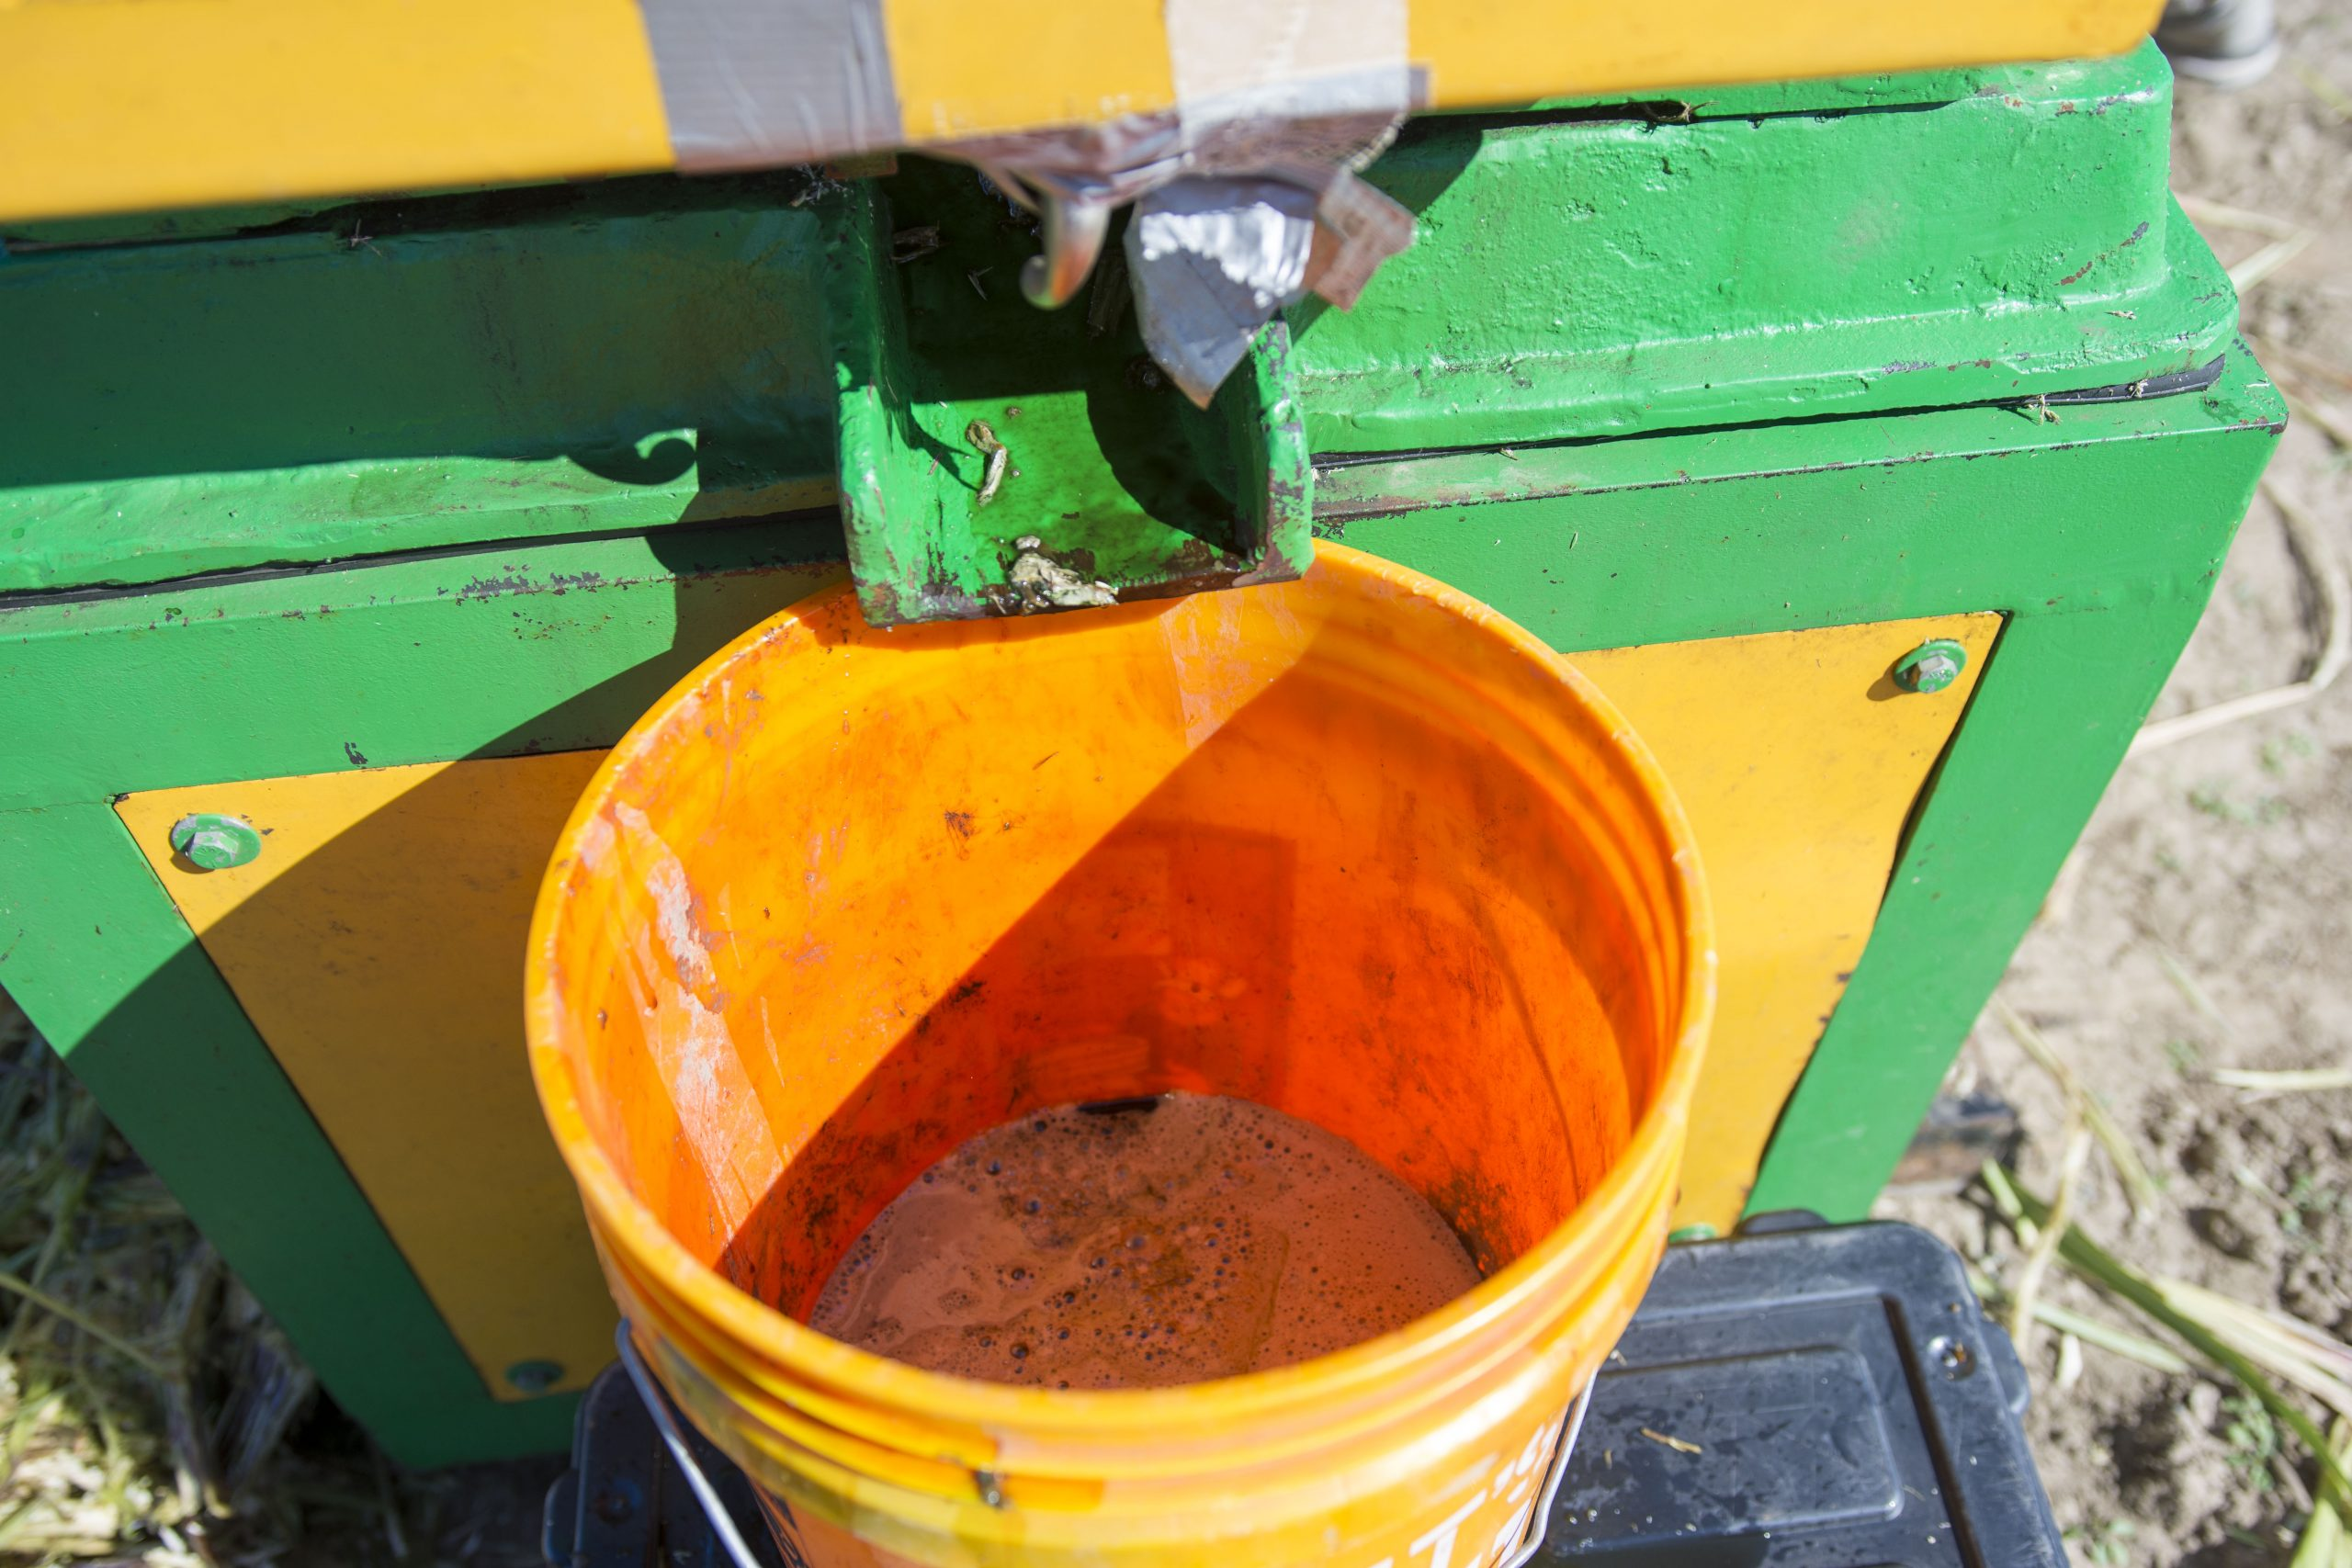 After processing in the juicer, an oil-sugar mixture derived from the oilcane biomass is transported to IBRL.